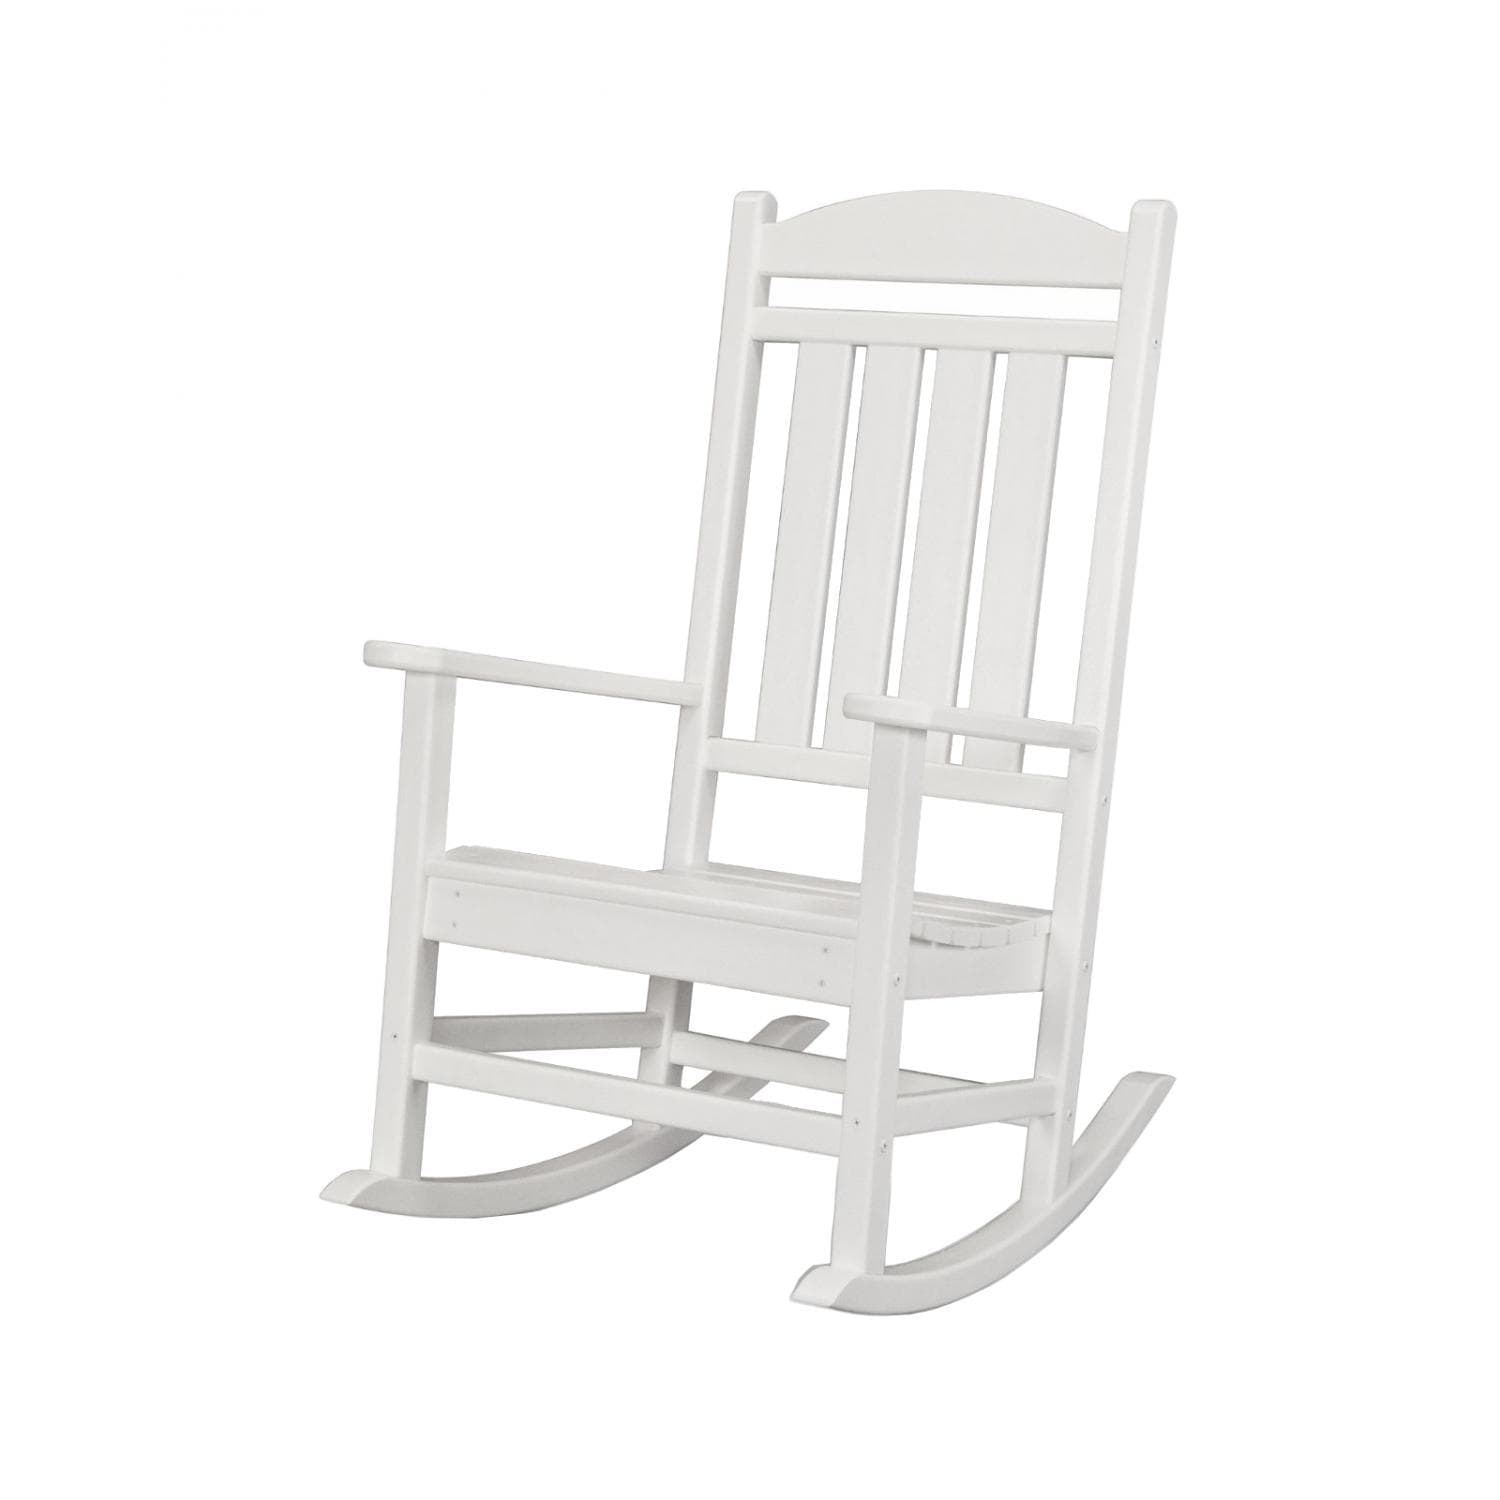 Patio Rocker Chairs Presidential Recycled Plastic Wood Patio Rocking Chair By Polywood White